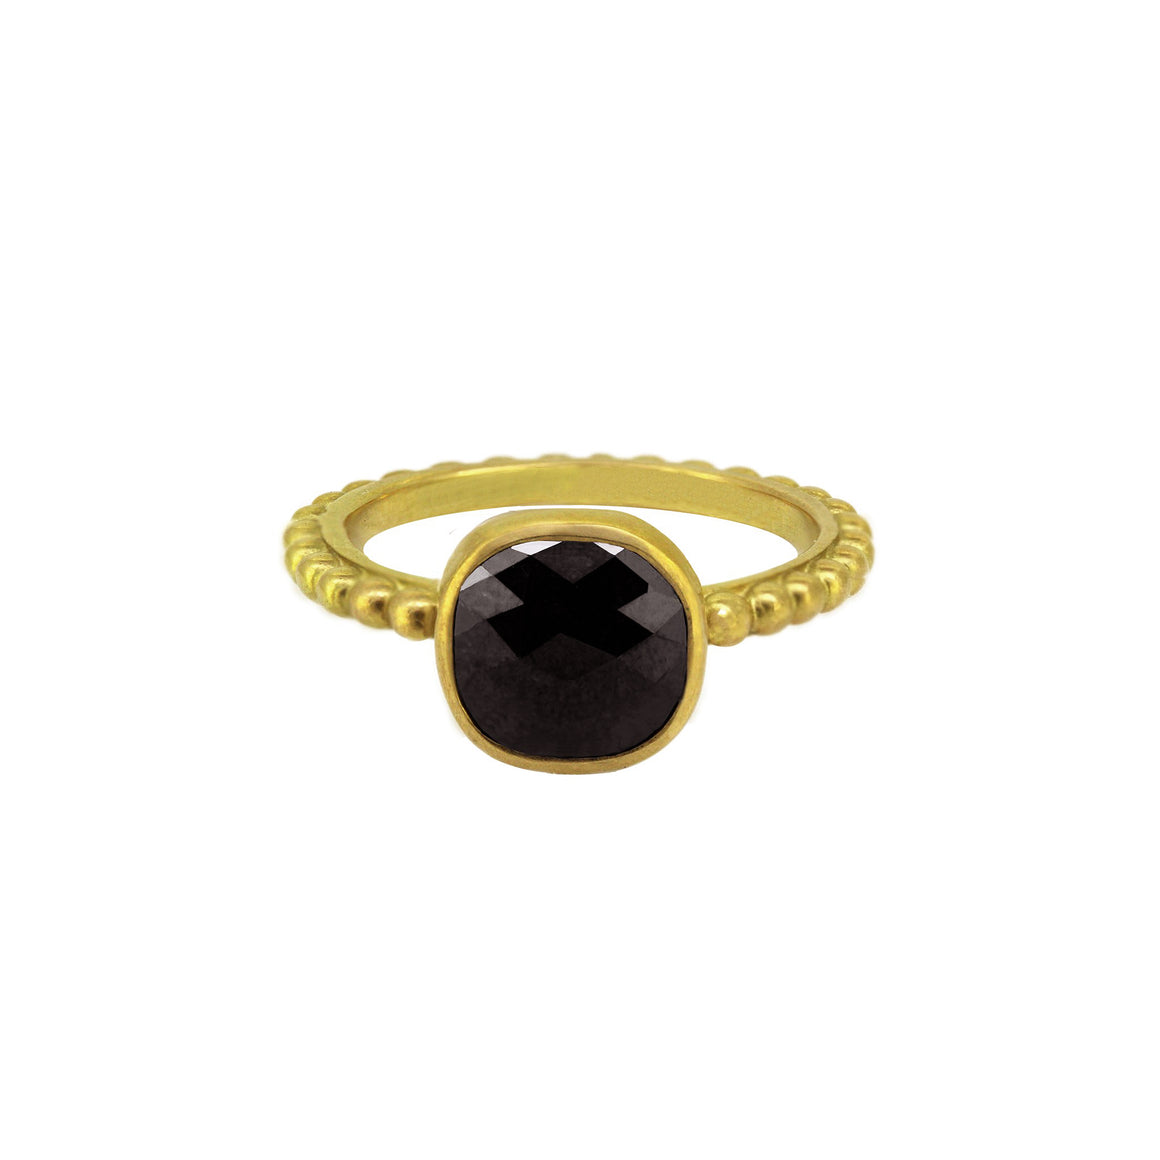 Cabochon cut black diamond stone with checkerboard facets on a Ball band for stacking. yellow gold